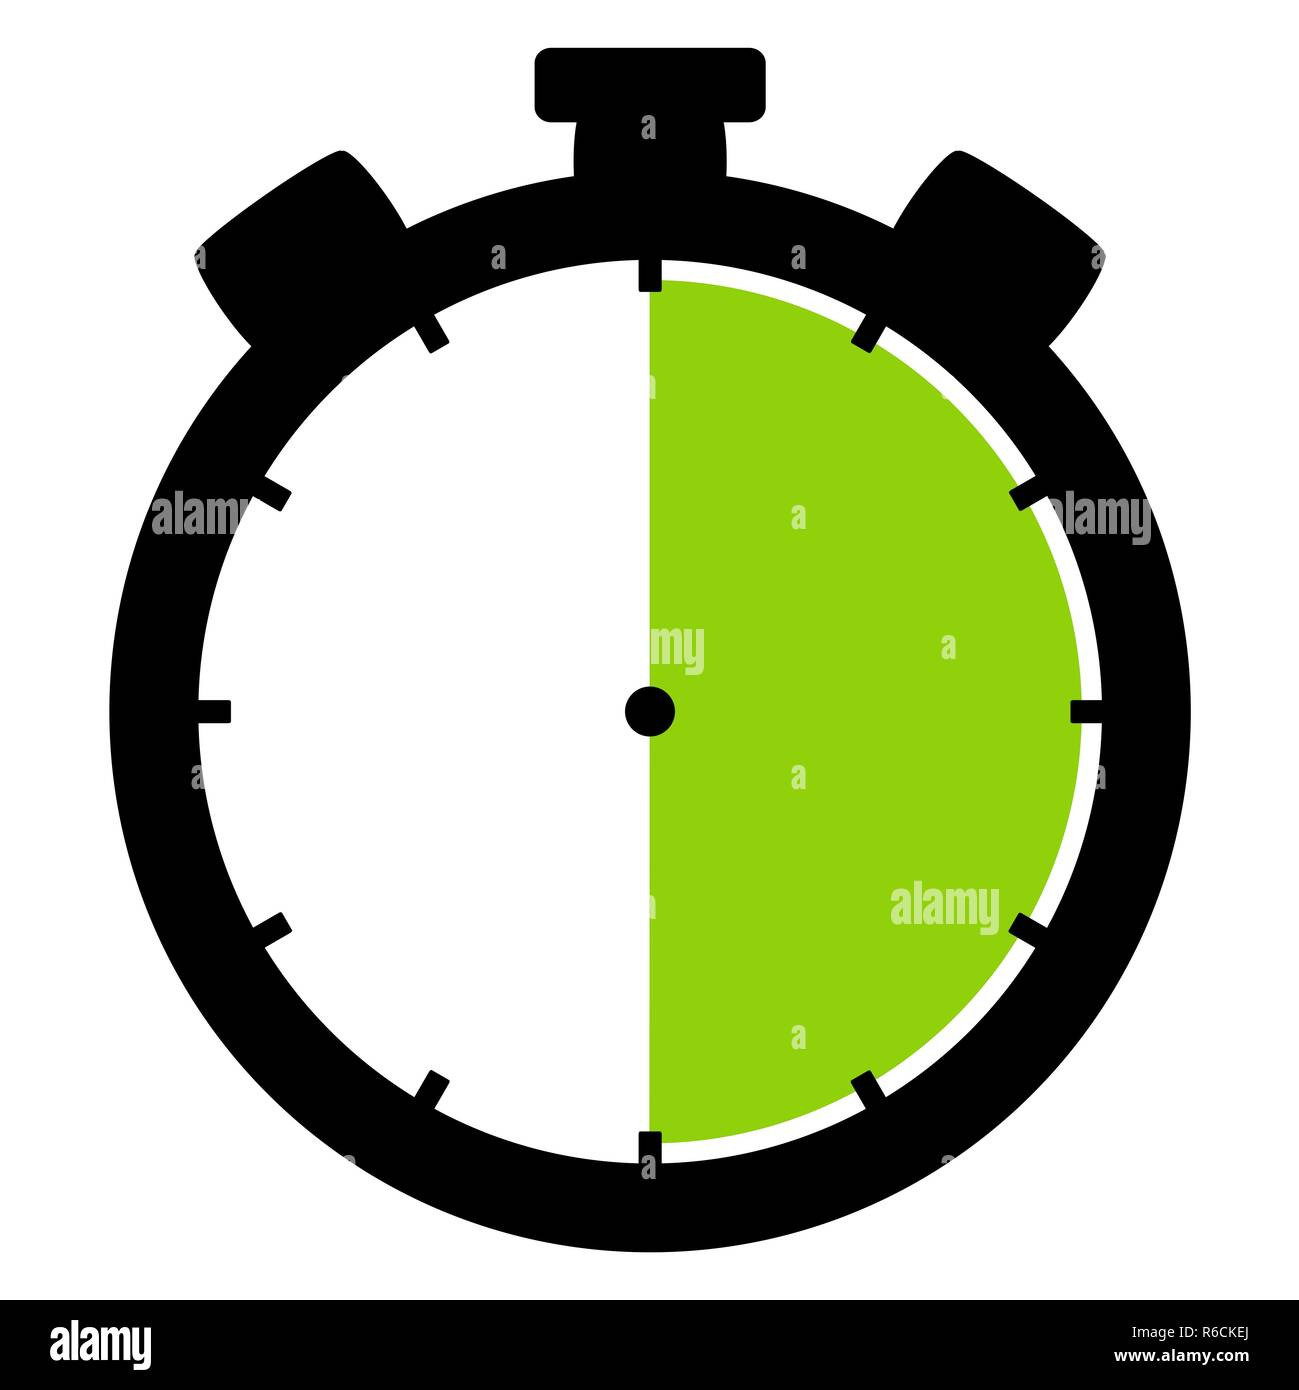 stopwatch icon: 30 minutes 30 seconds or 6 hours - Stock Image